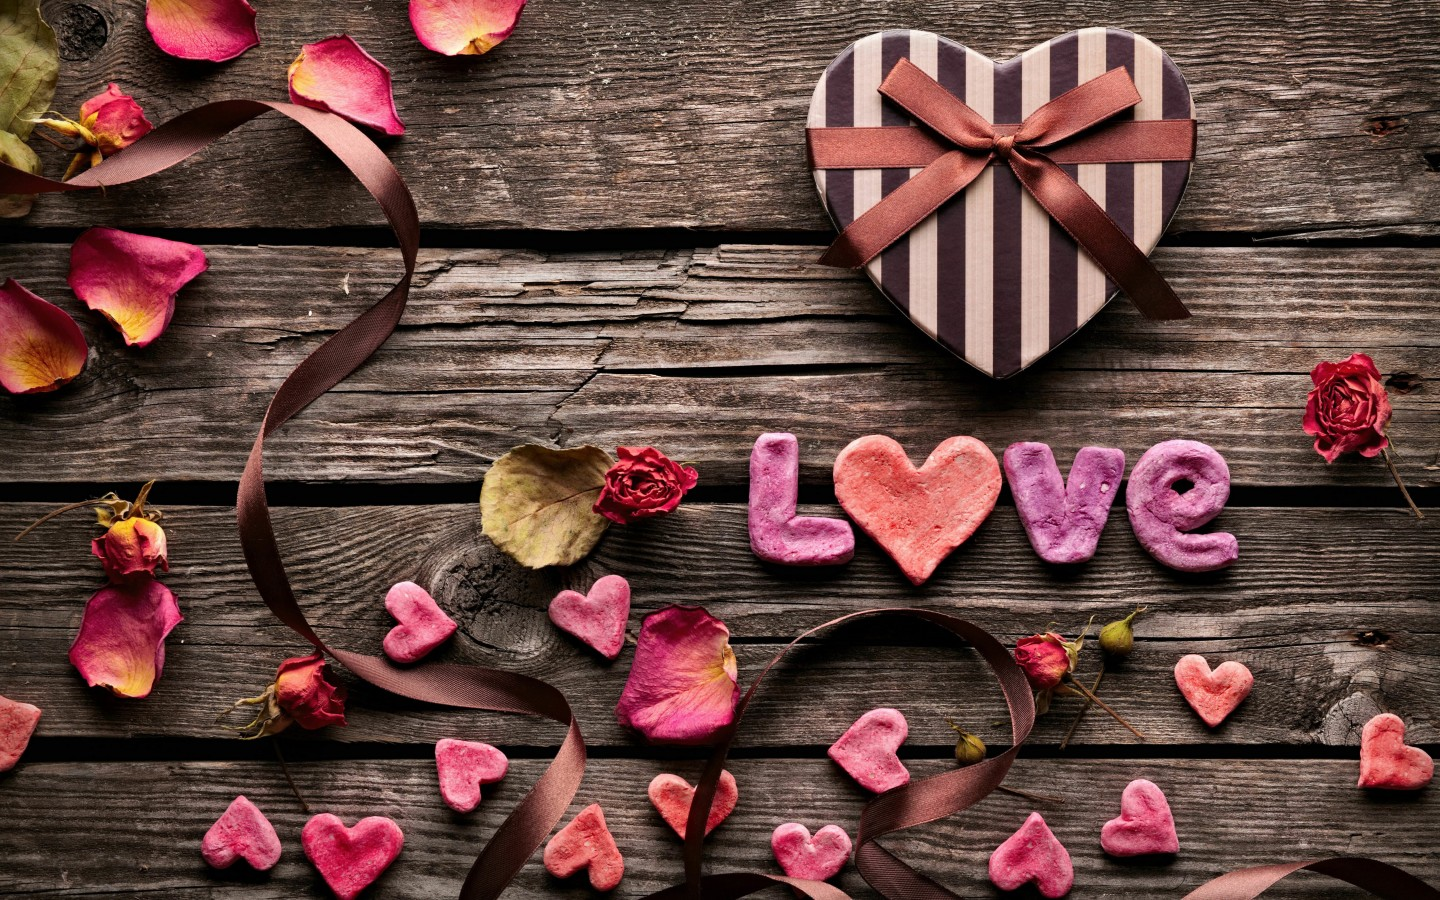 Romantic Gift Wallpaper for Desktop 1440x900